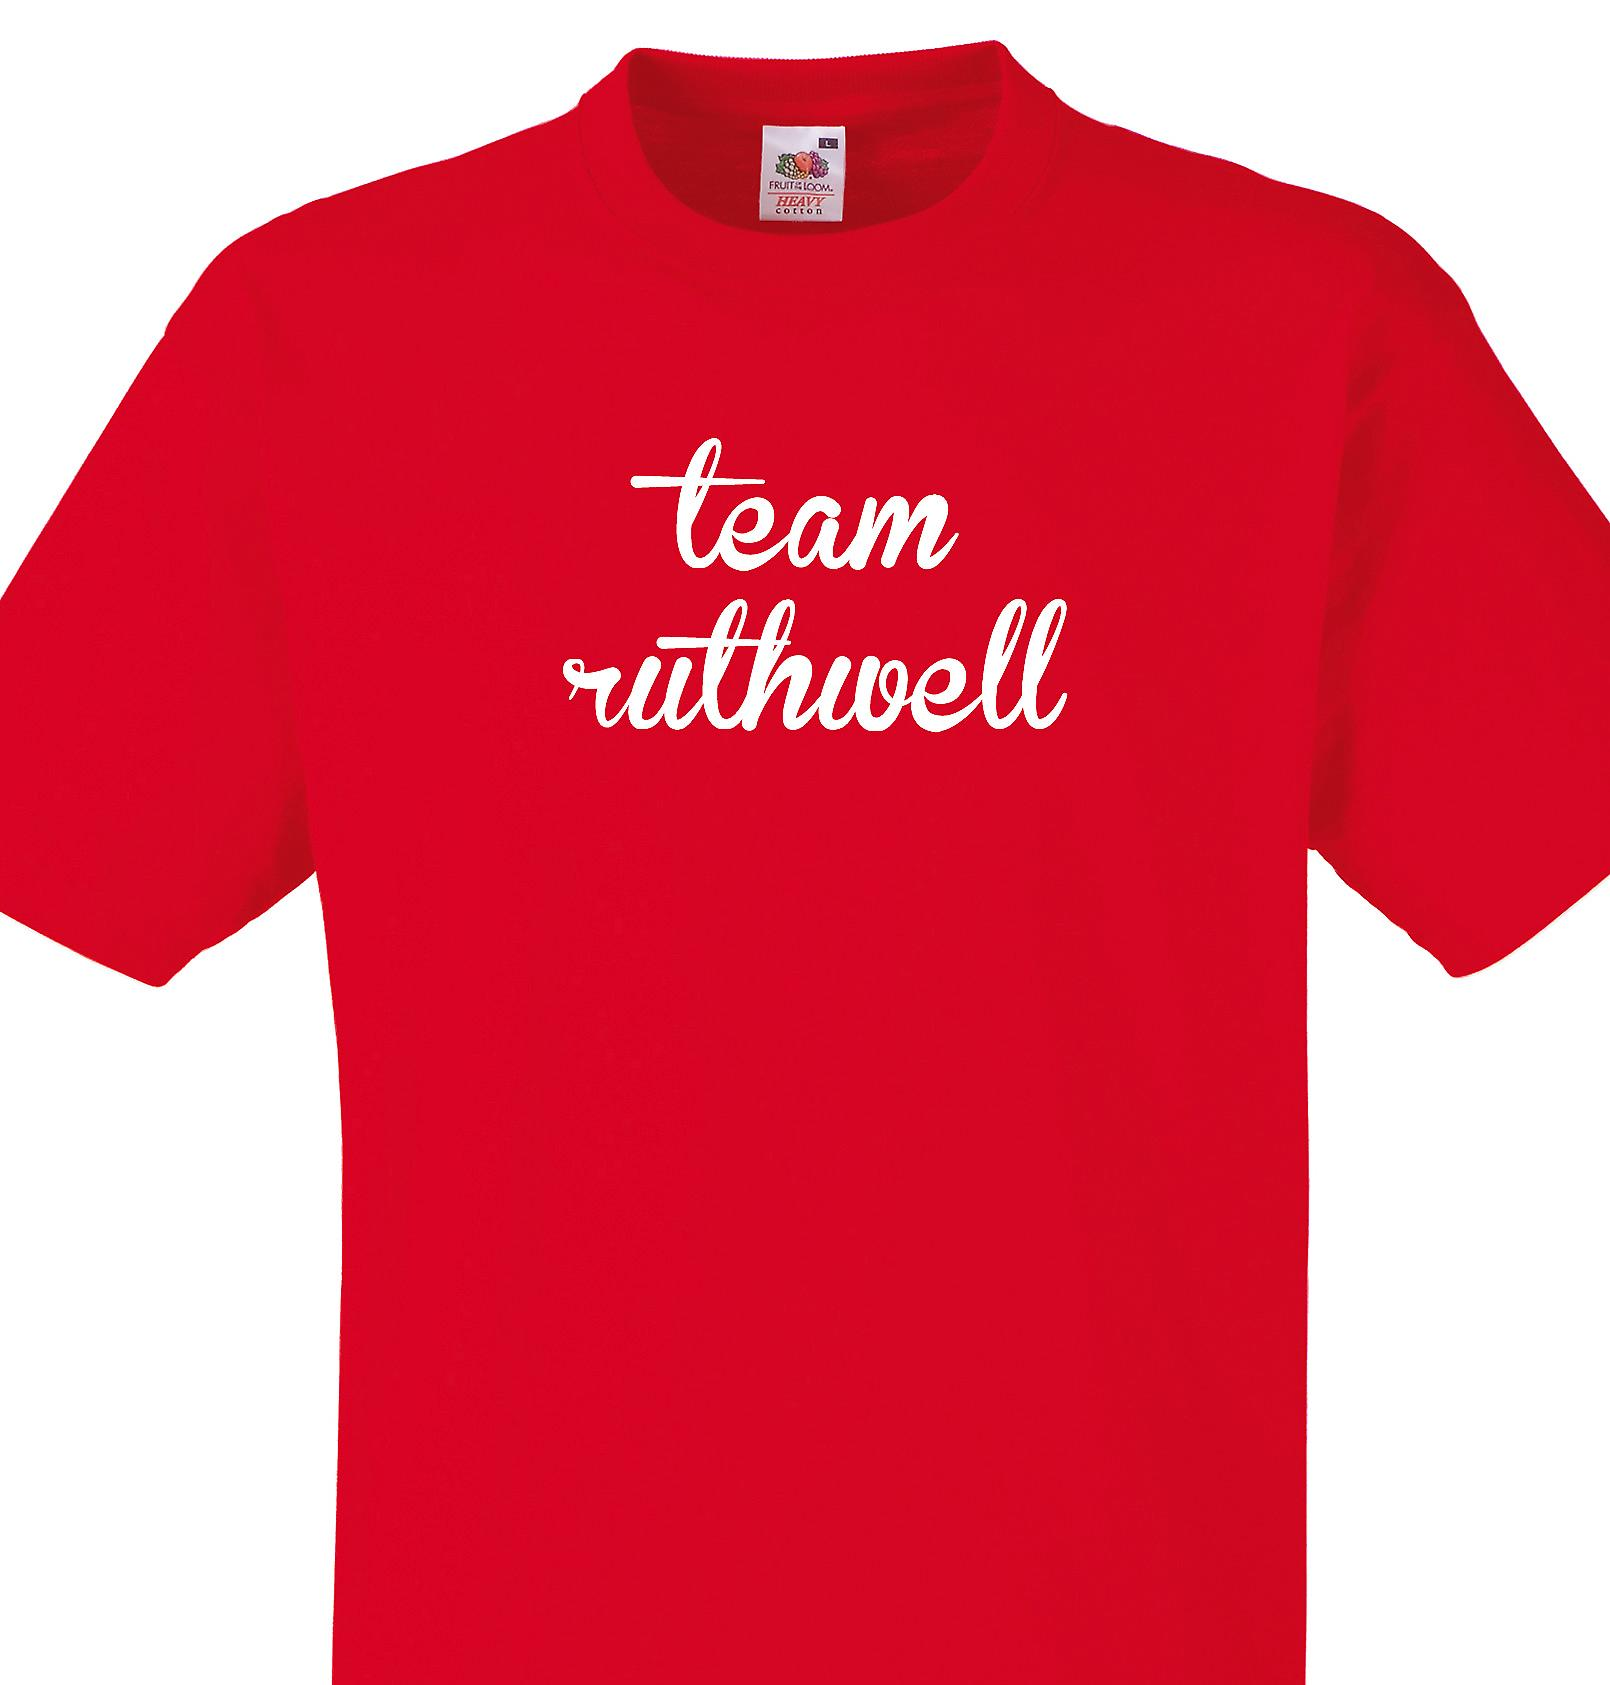 Team Ruthwell Red T shirt